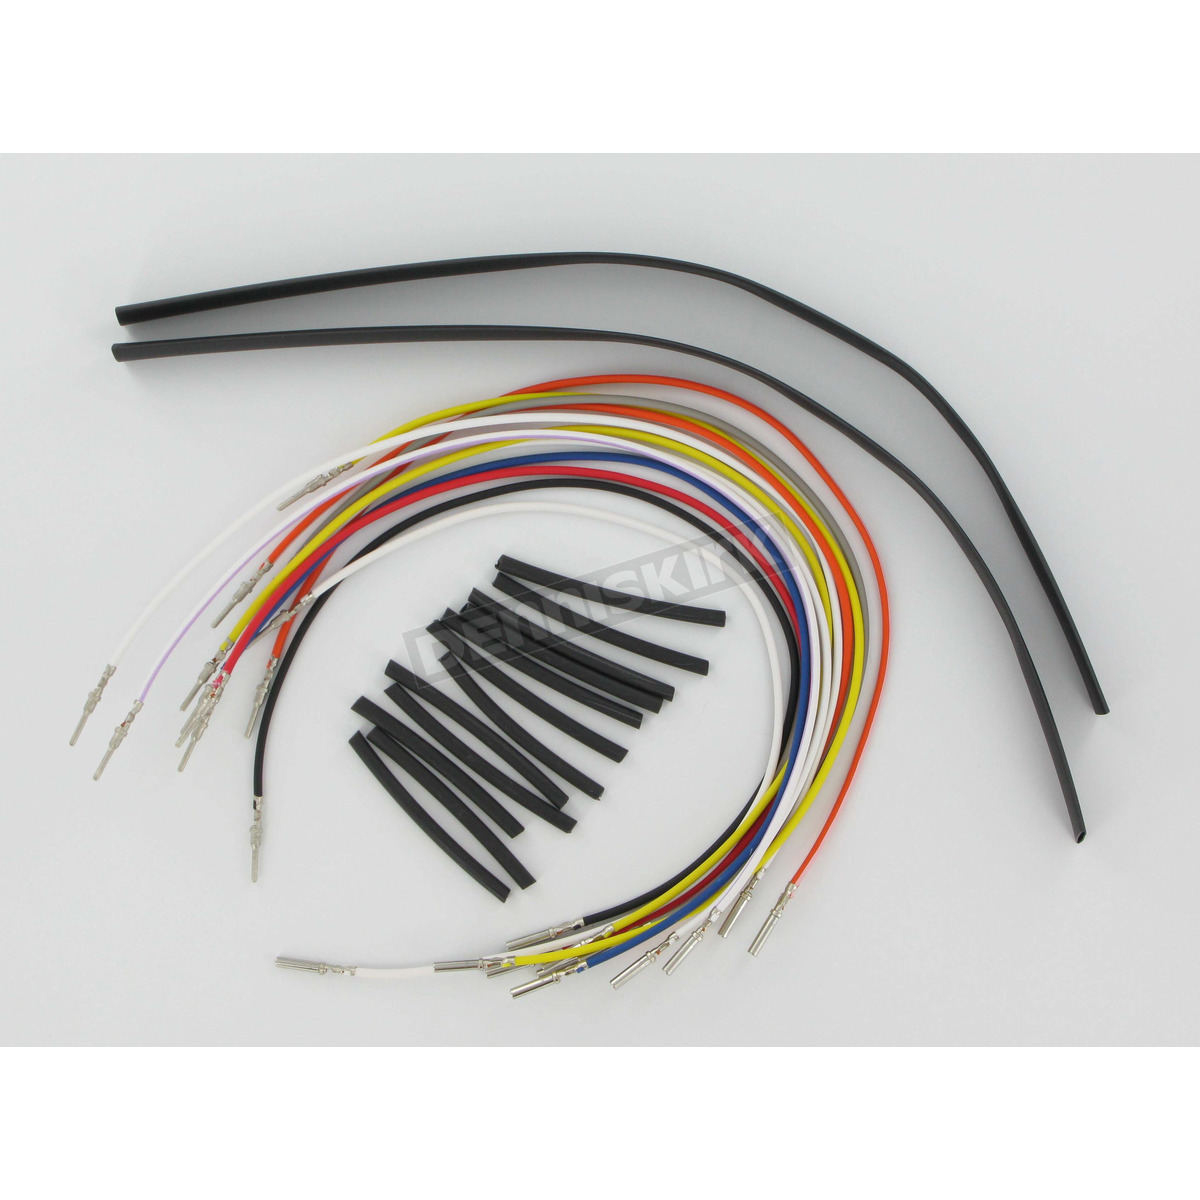 4 in. Handlebar Wire Harness Extension Kit - NIL-WH4 Harley Davidson Handlebar Wiring Harness Extension on